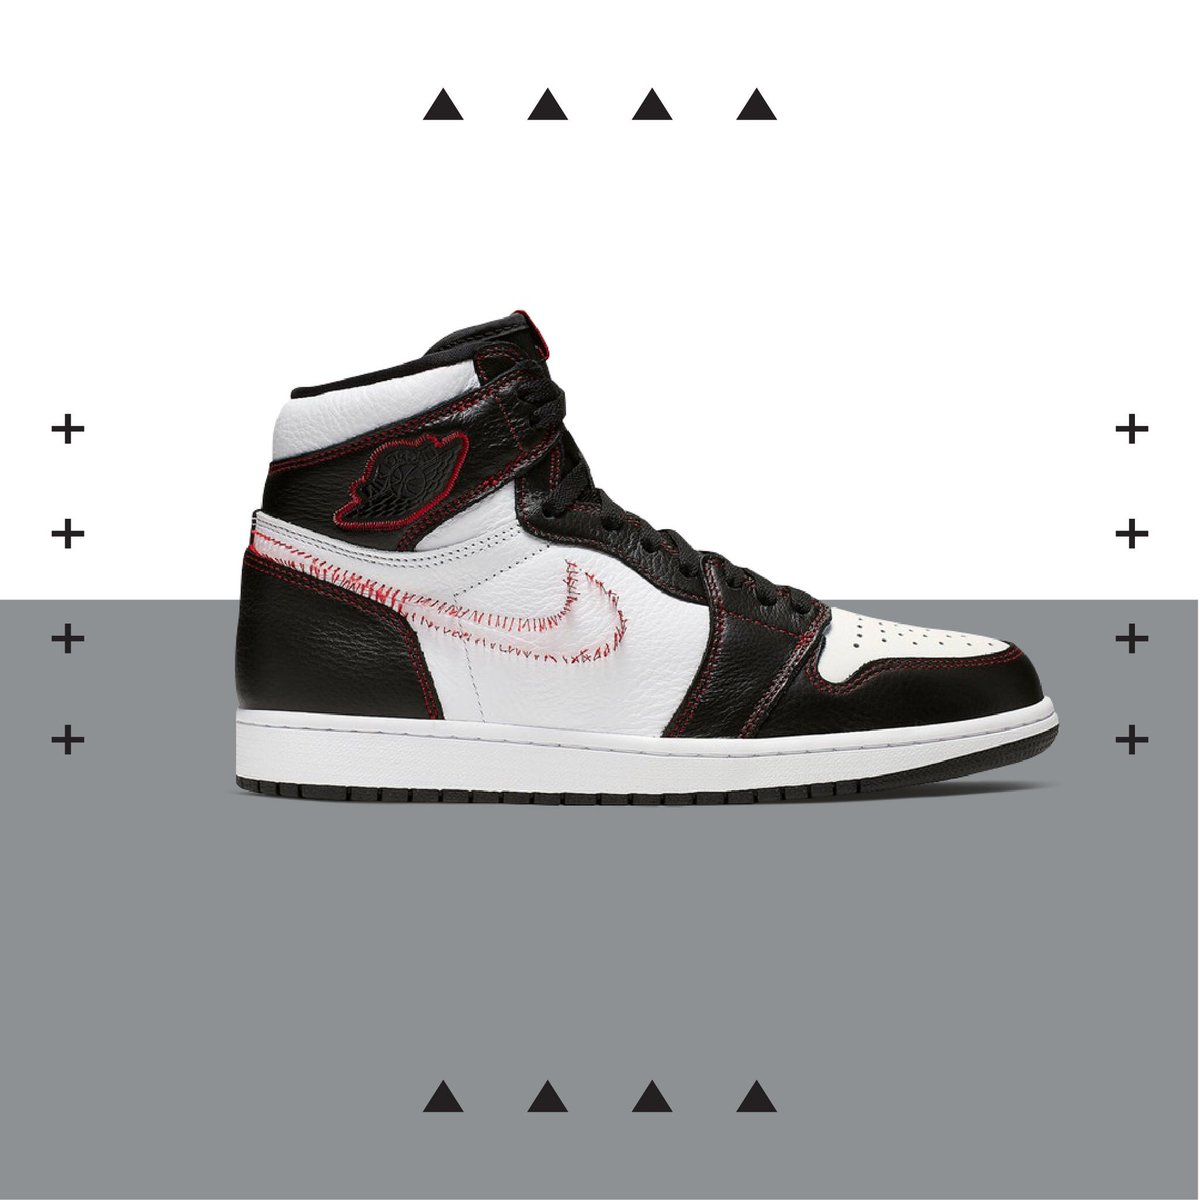 b5c26567 Shop or sell the Air Jordan 1 Retro High OG 'Defiant': https://stockx.com/air-jordan-1-retro-high-defiant-white-black-gym-red  …pic.twitter.com/C4nqzyFXKQ